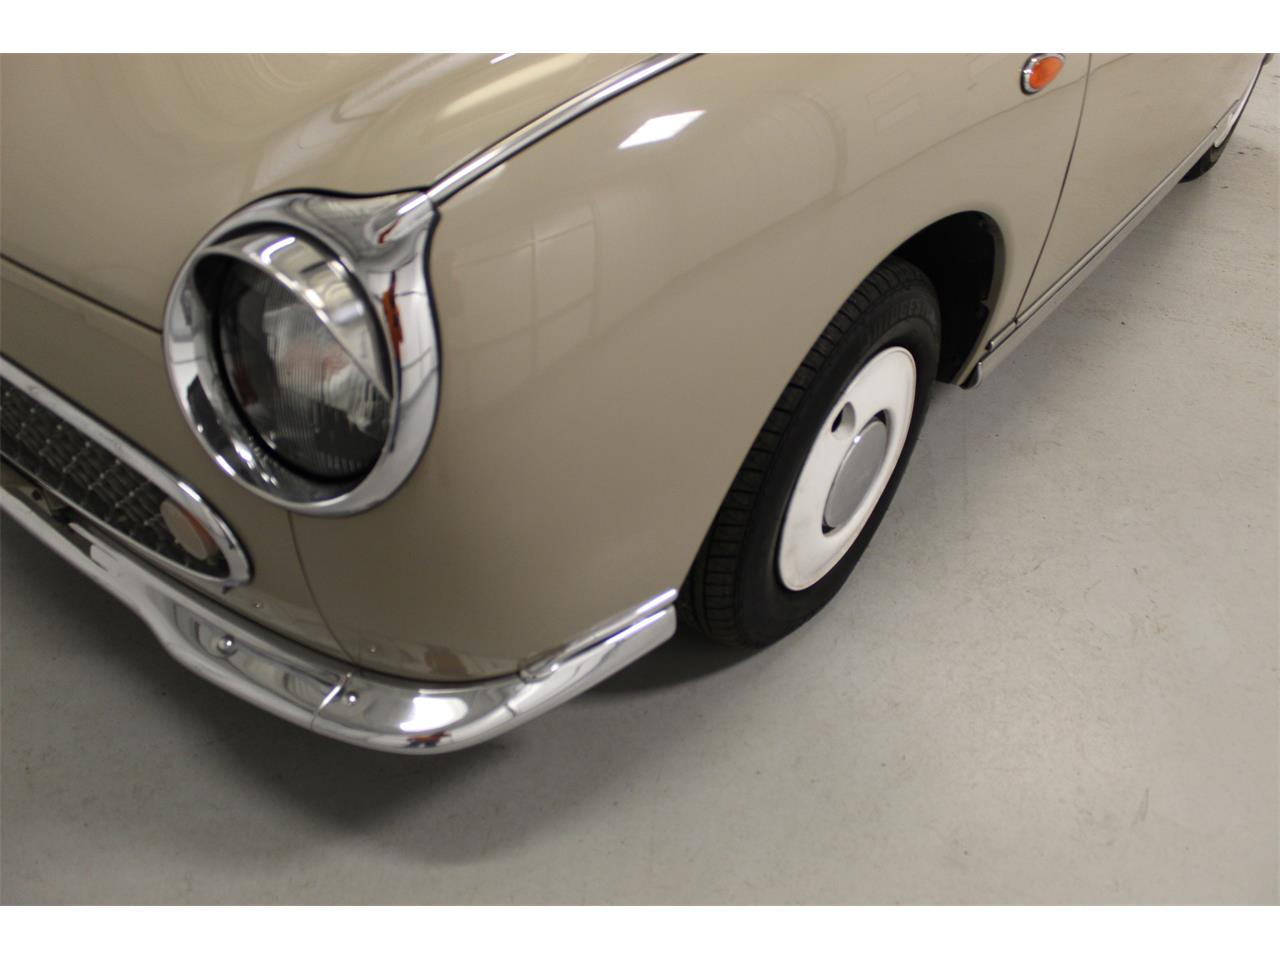 1991 Nissan Figaro for sale in Christiansburg, VA – photo 32